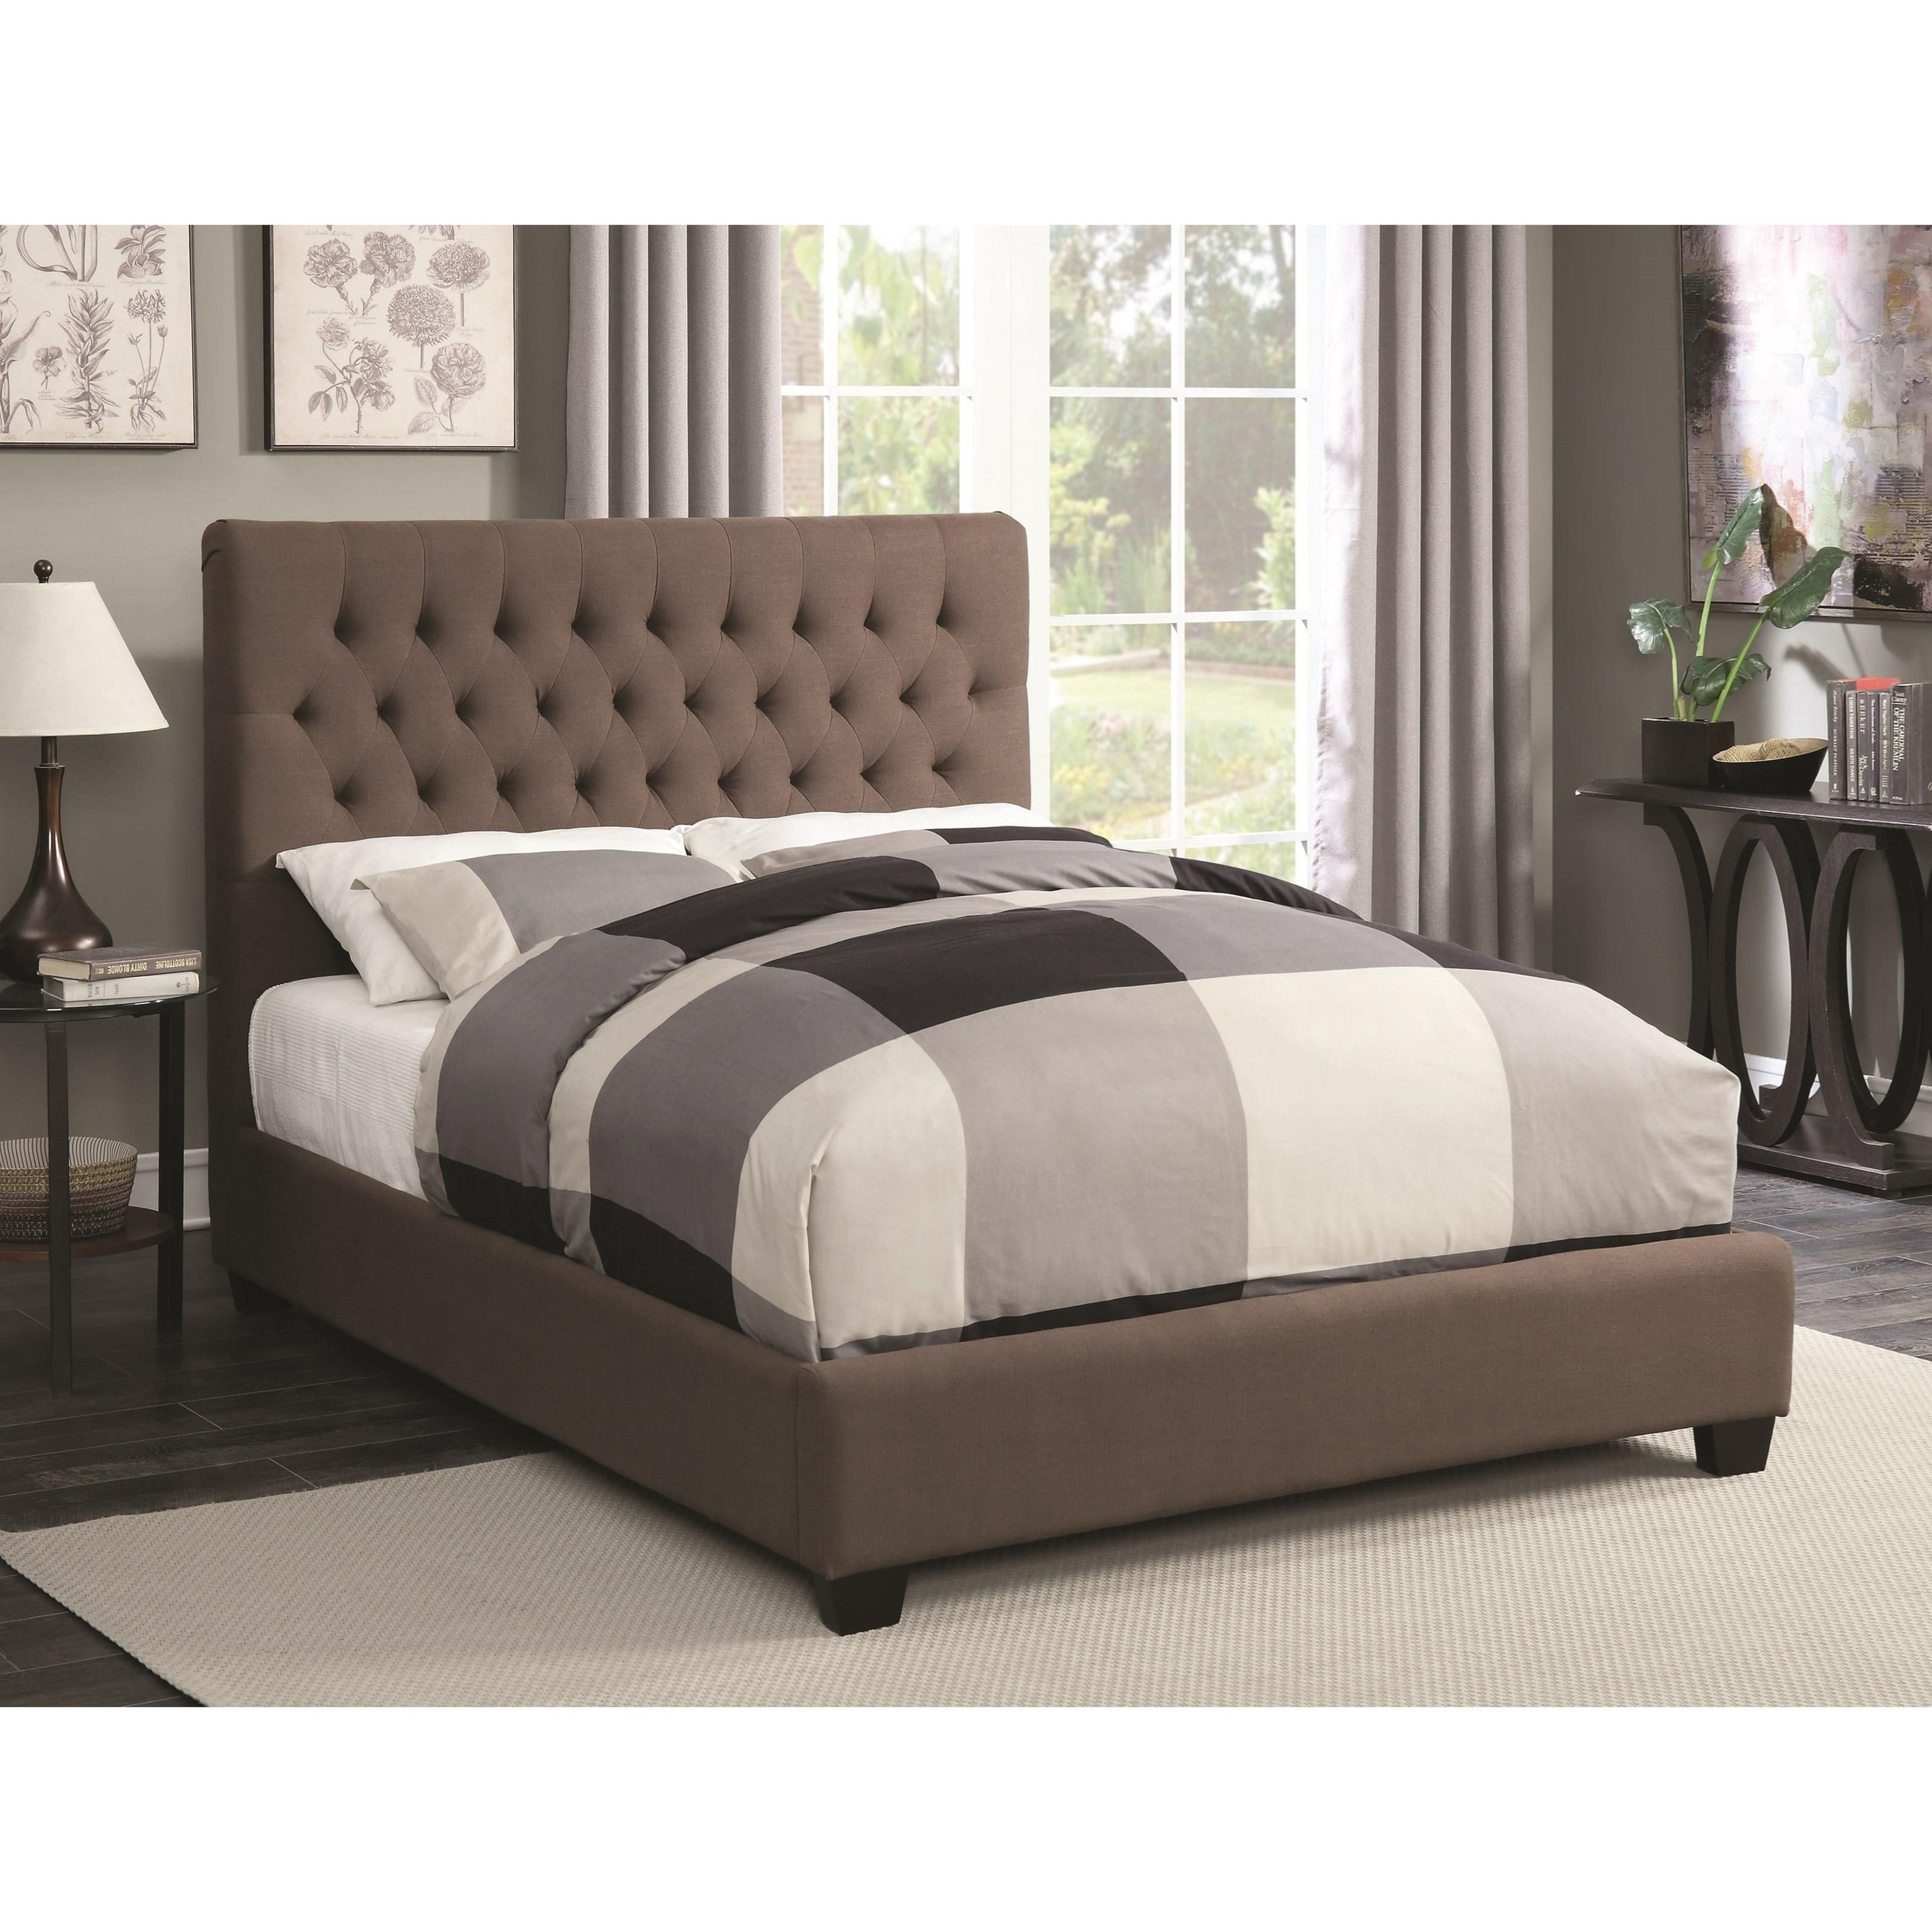 coaster upholstered beds queen chloe upholstered bed with tufted, Headboard designs